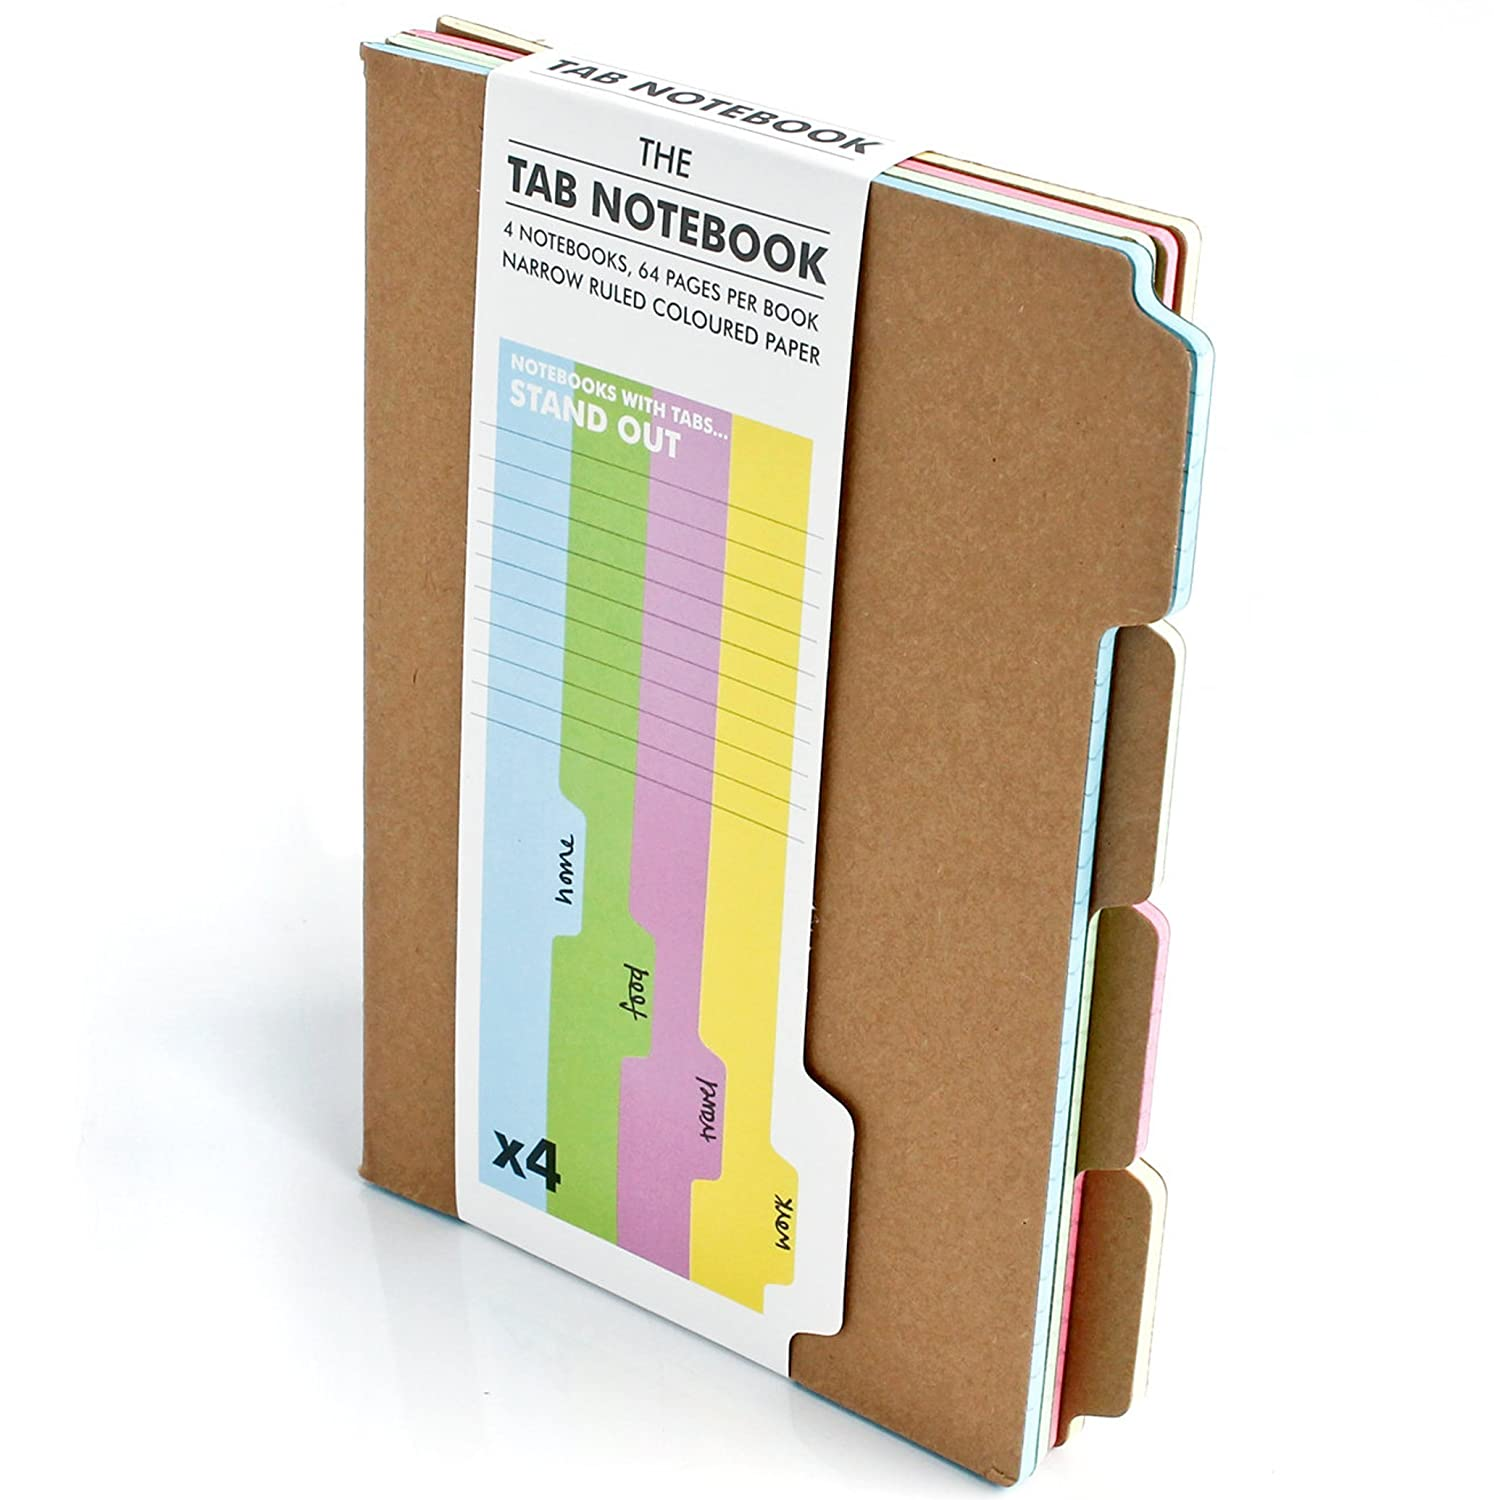 Suck UK Carnets A5 à onglets SK NOTETAB1 ordinateur portable notes 4 livres